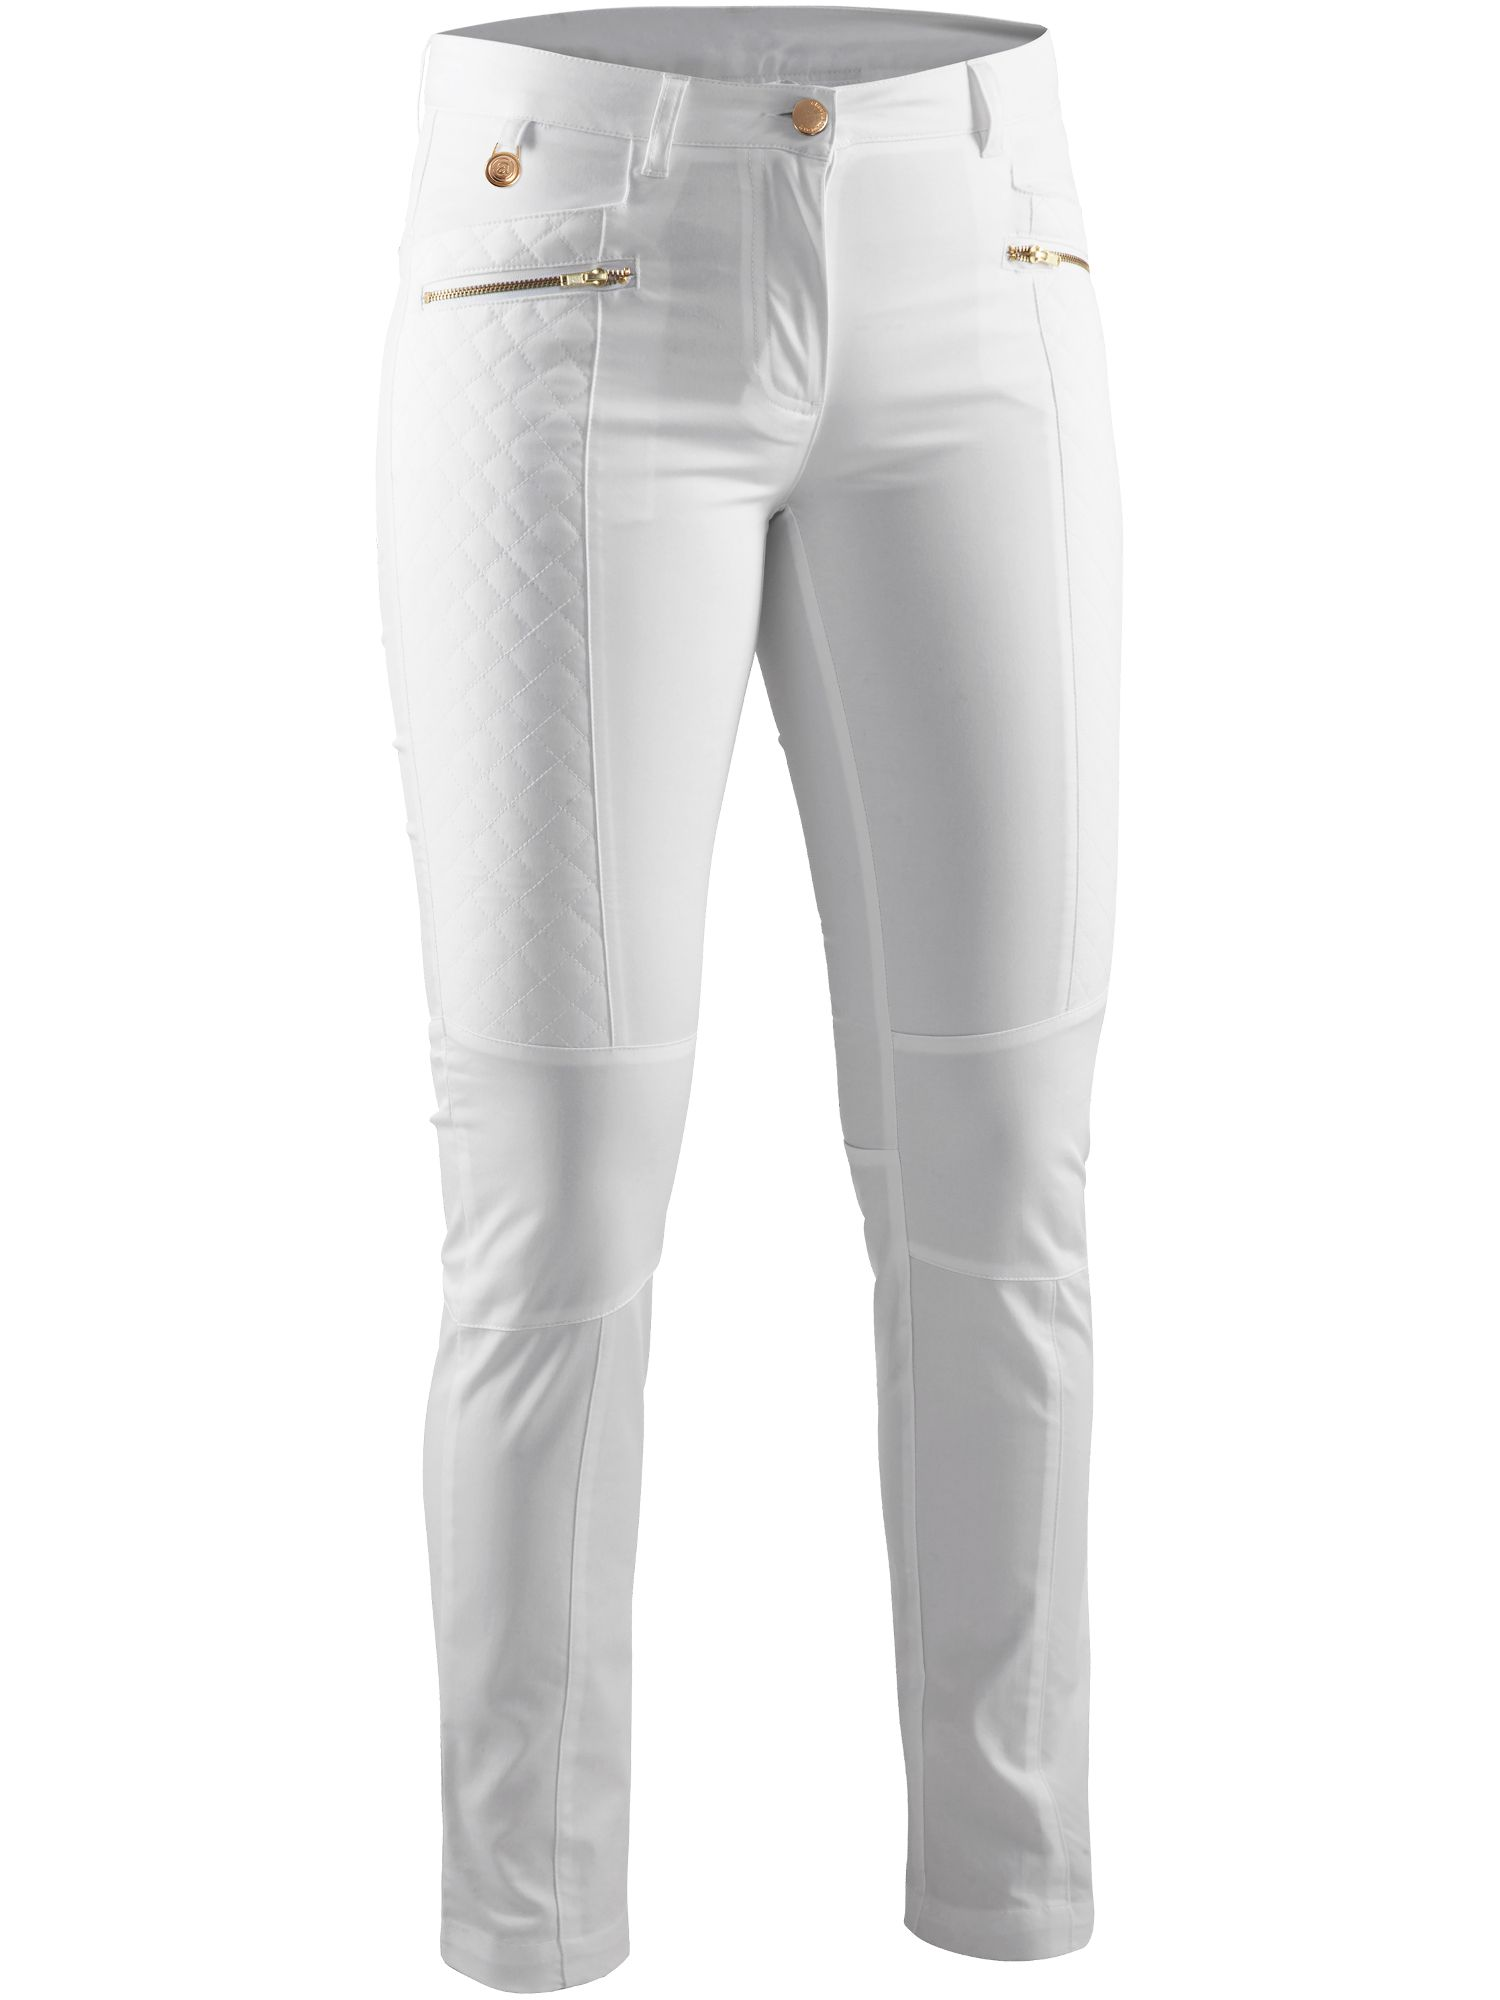 Abacus Abacus Lisburn Trousers, White